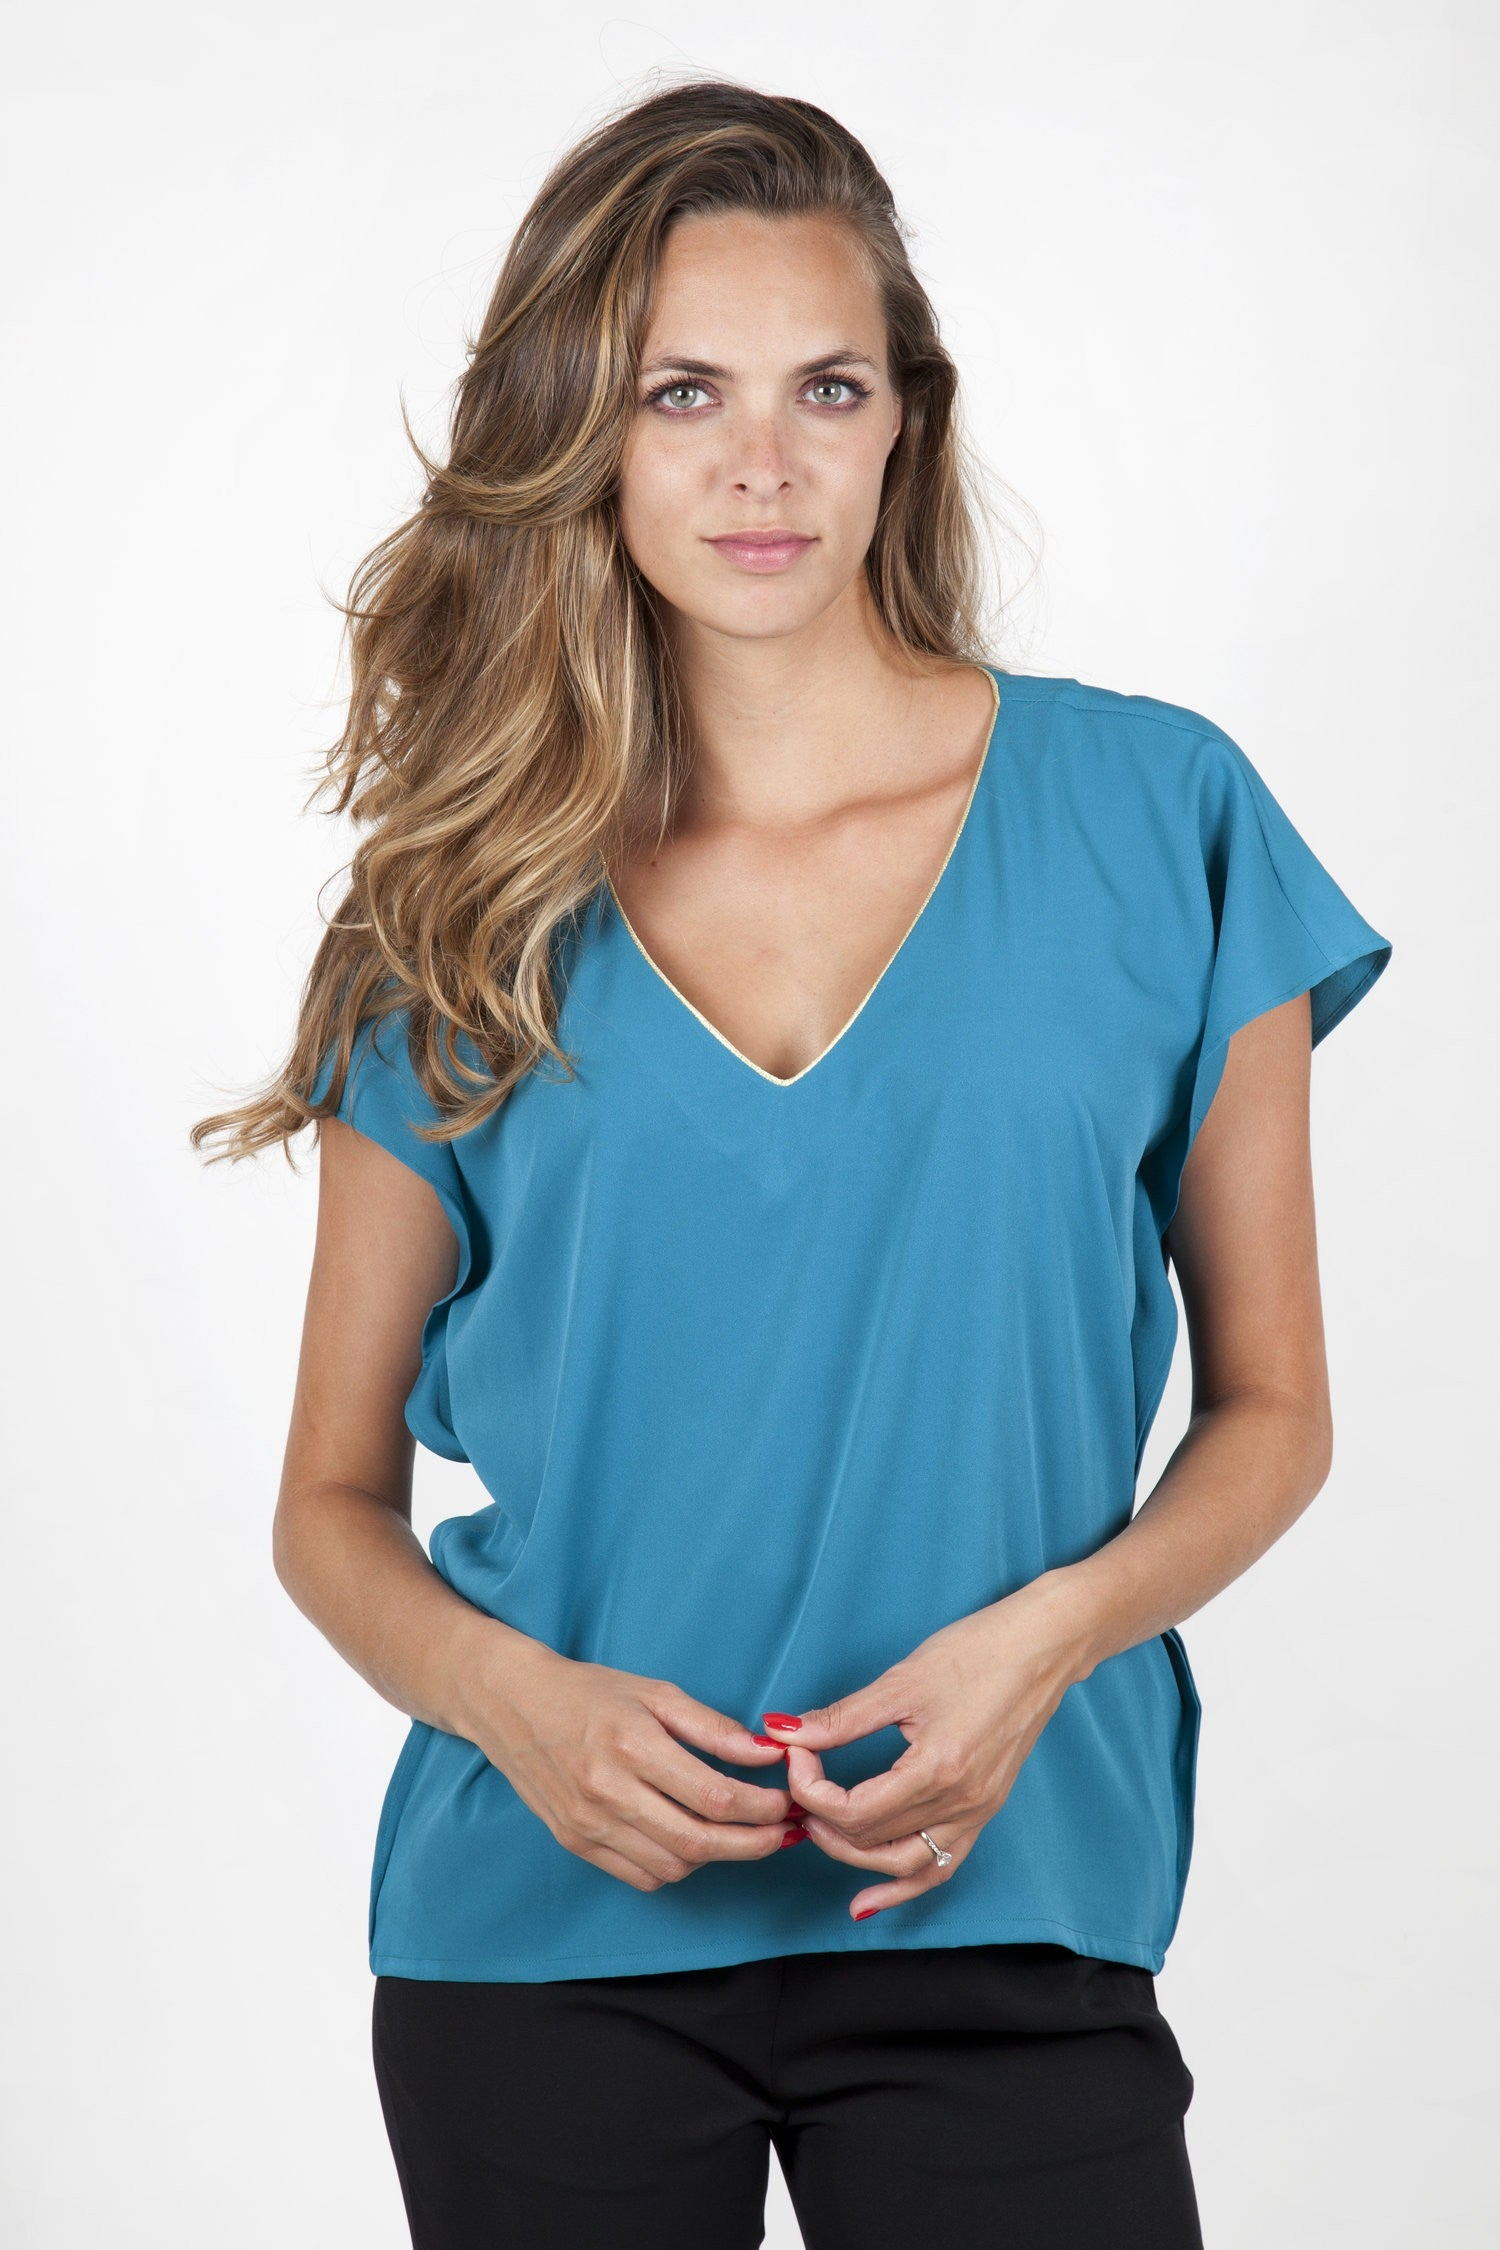 Stella Green Top Capsule Collection By Juliette - Green / Free - Tops Capsule Collection By Juliette